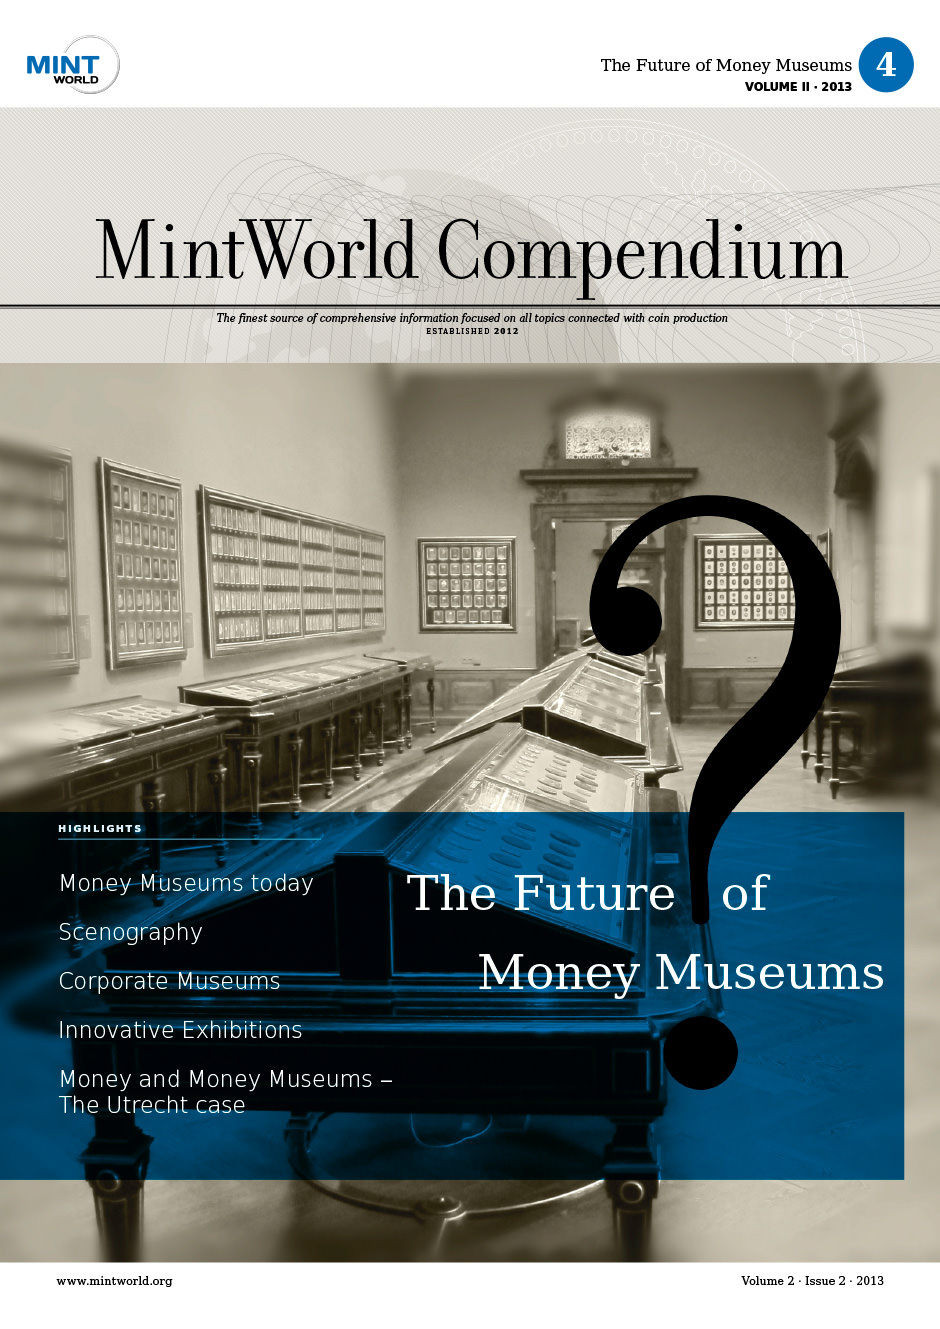 MintWorld Compendium, Compendium 2 · Issue 2 · 2013, The Future of Money Museums, This issue is about the innovations and tendences of money museums.